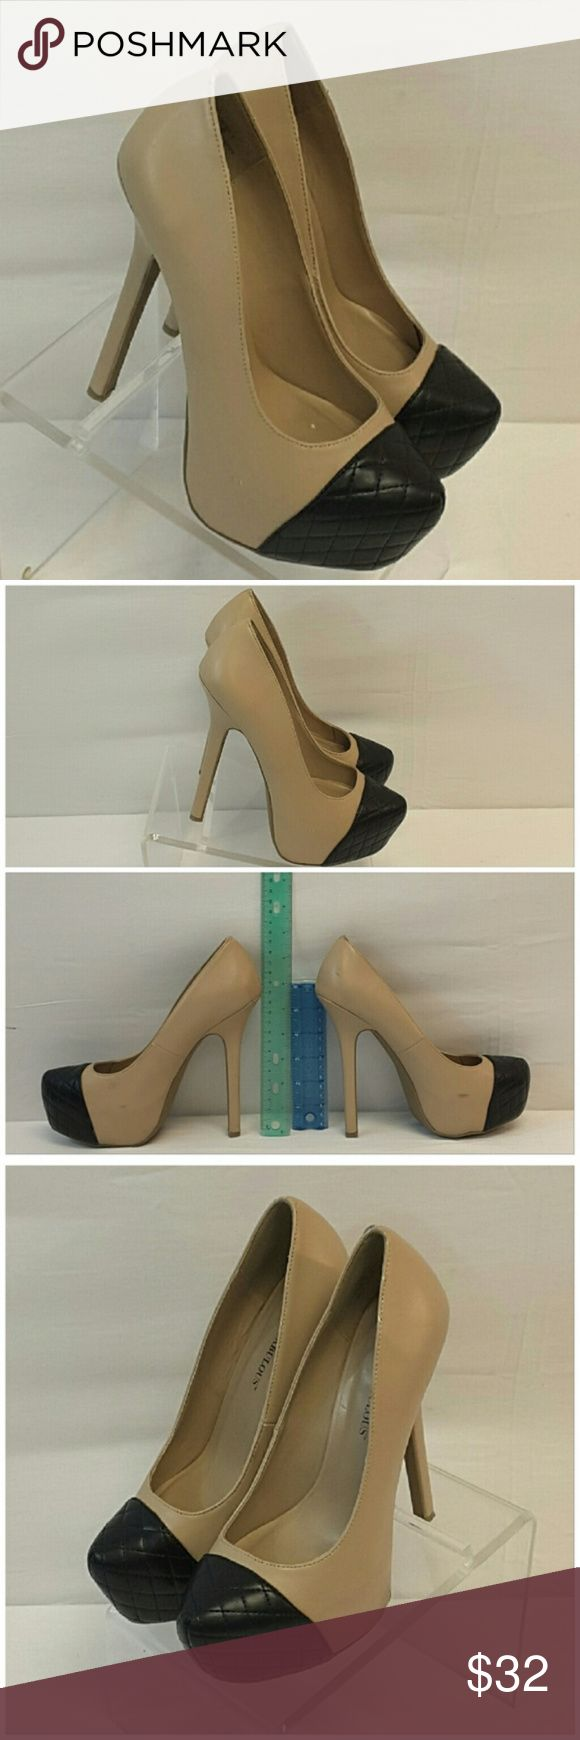 "JUST FABULOUS, Two-tone Heeled Platform Pumps sz 8 JUST FABULOUS, Two-tone Heeled Platform Pumps, size 8, 6"" stilleto heels, 2"" platform, Quilted toe, man made material. Rulers for reference only (blue is 6"", green is 12""). See pictures for scratches, scuffs, marks. *PLUS* DORI, Made in USA, Strapless Dress, size 3X Just Fabulous Shoes Heels"